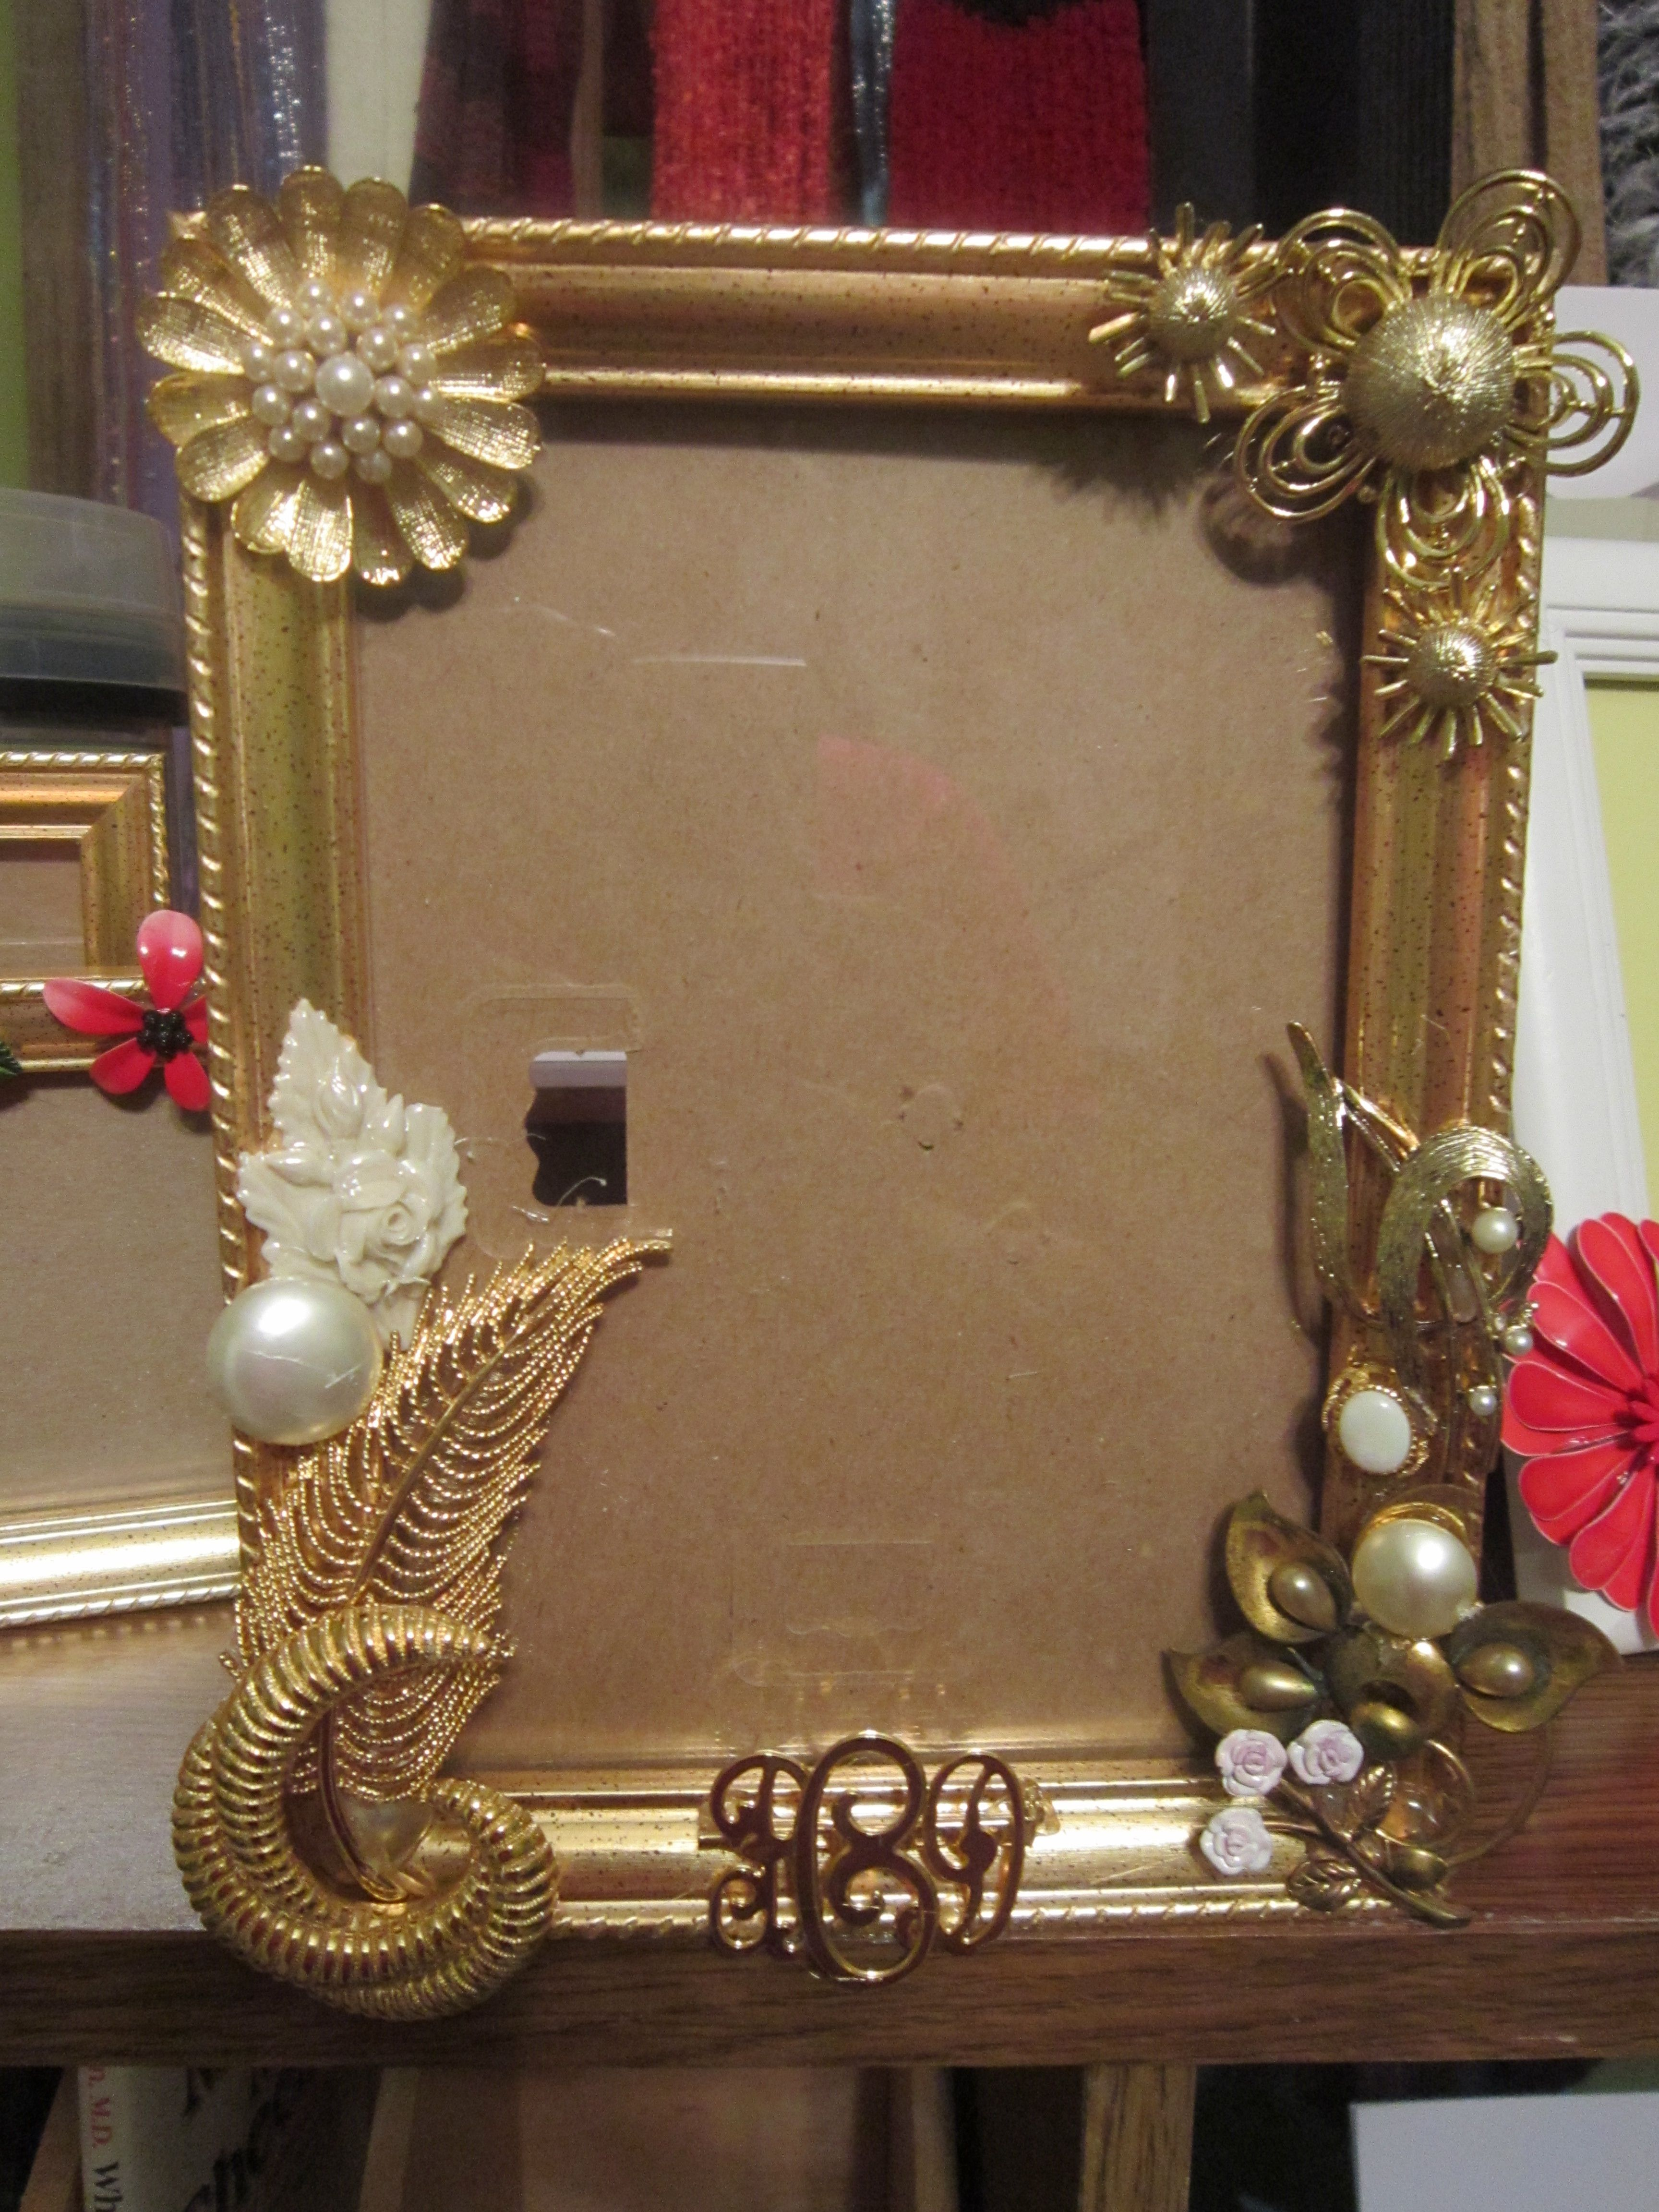 I took my moms old broaches and matching earrings and glued them to a frame ...made one for all of her grandchildren